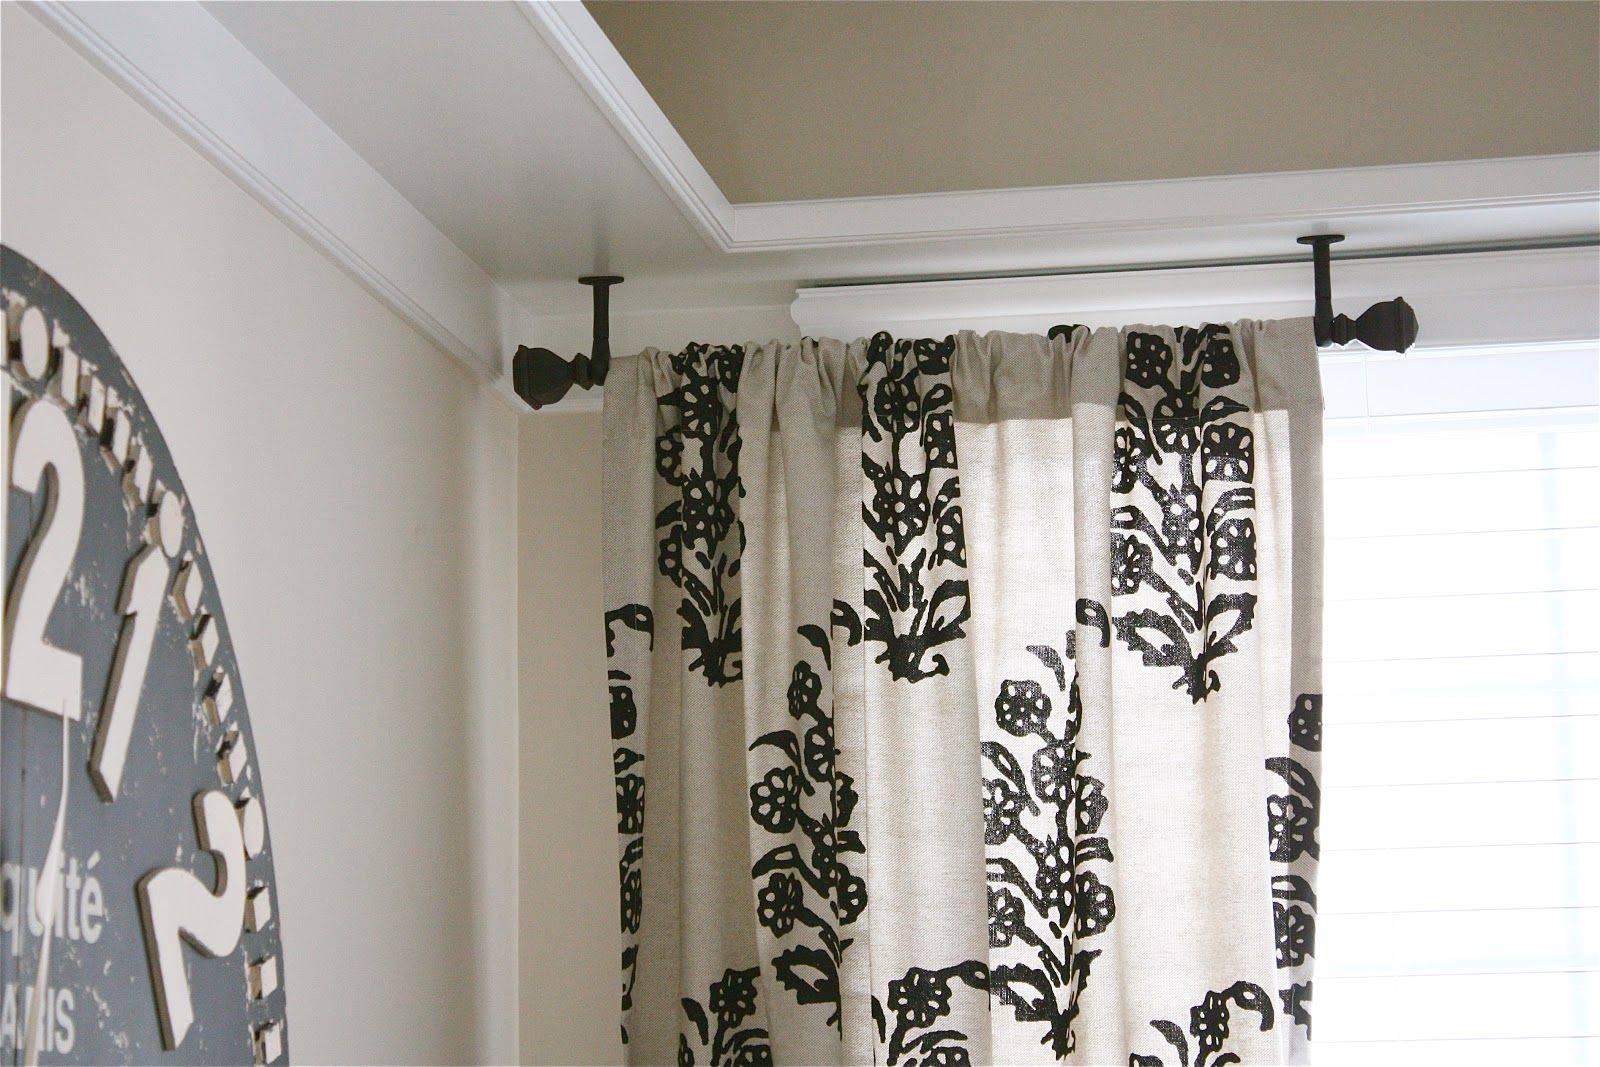 partial rods and visual flow.....effective Partial Black ceiling ...